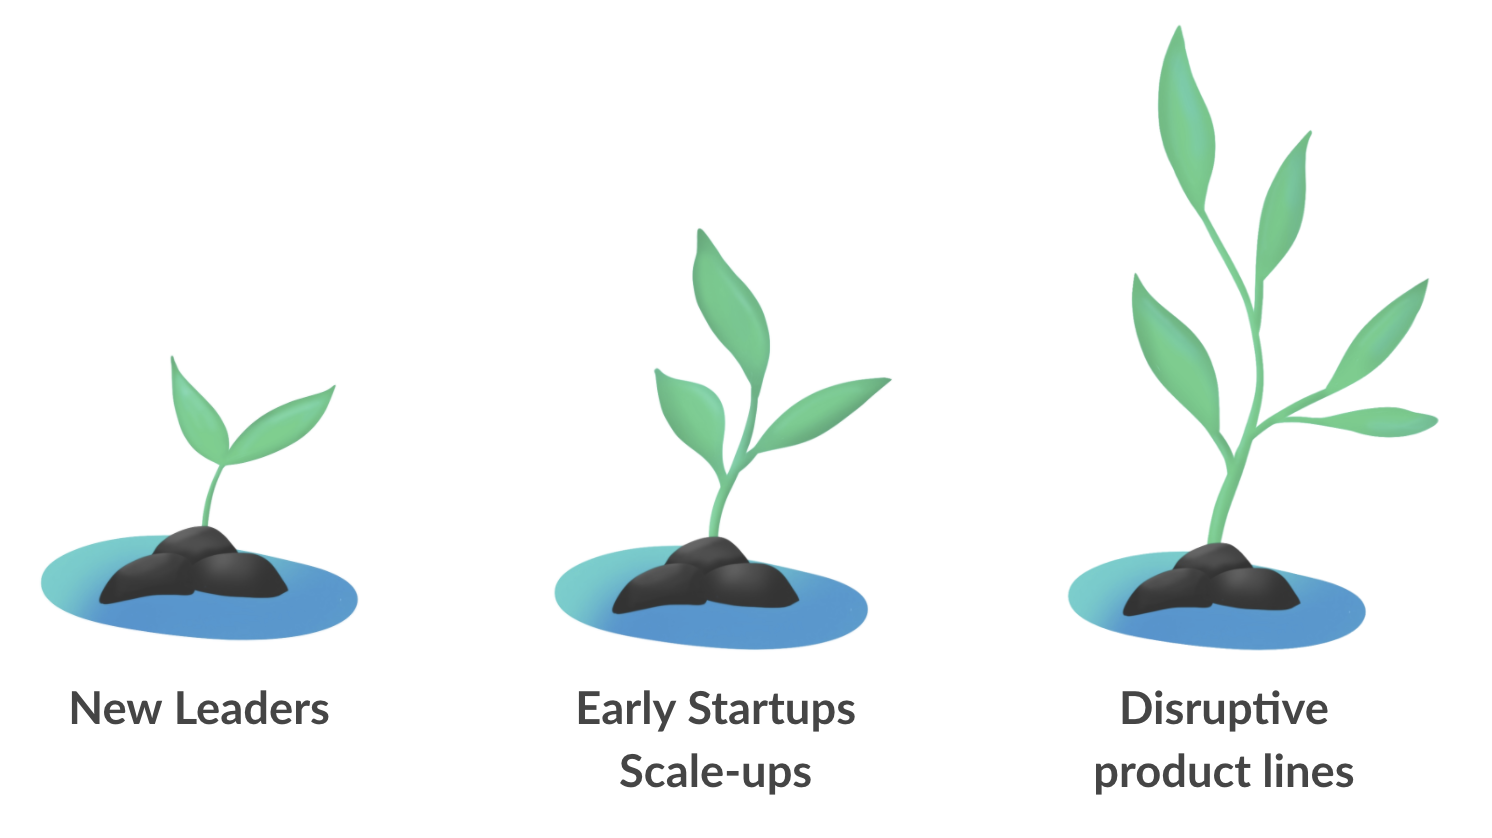 Quick Wins Framework benefits everyone: new leaders, early startups, disruptive product lines